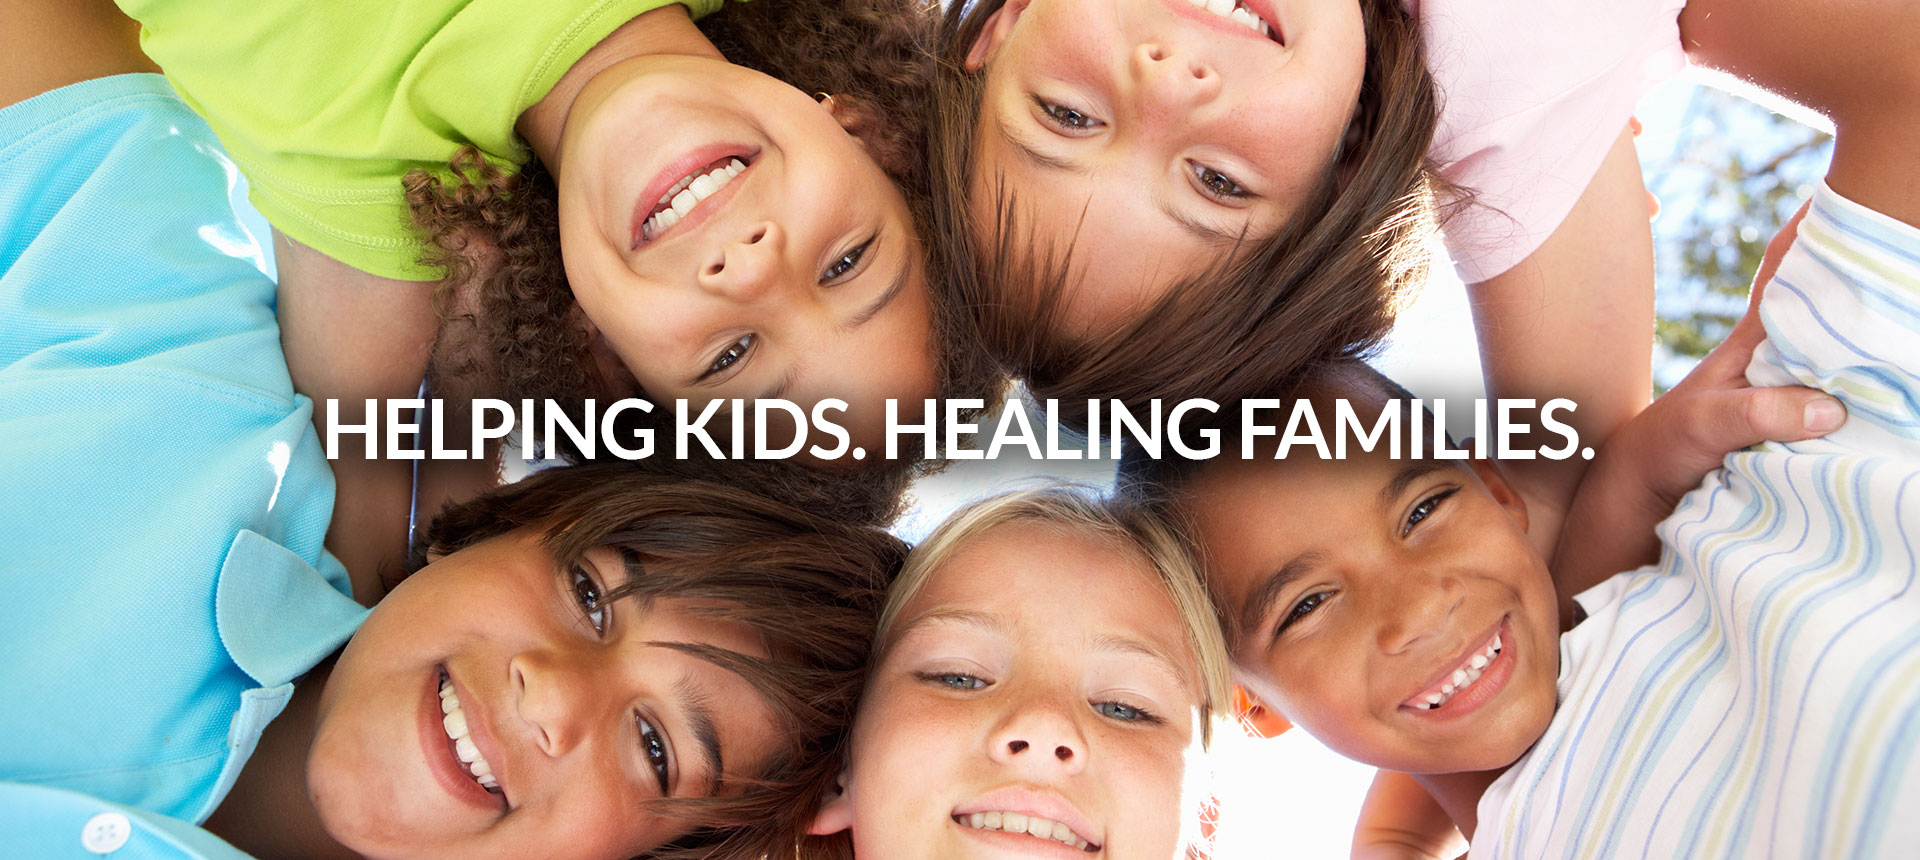 Helping Kids. Healing Families.